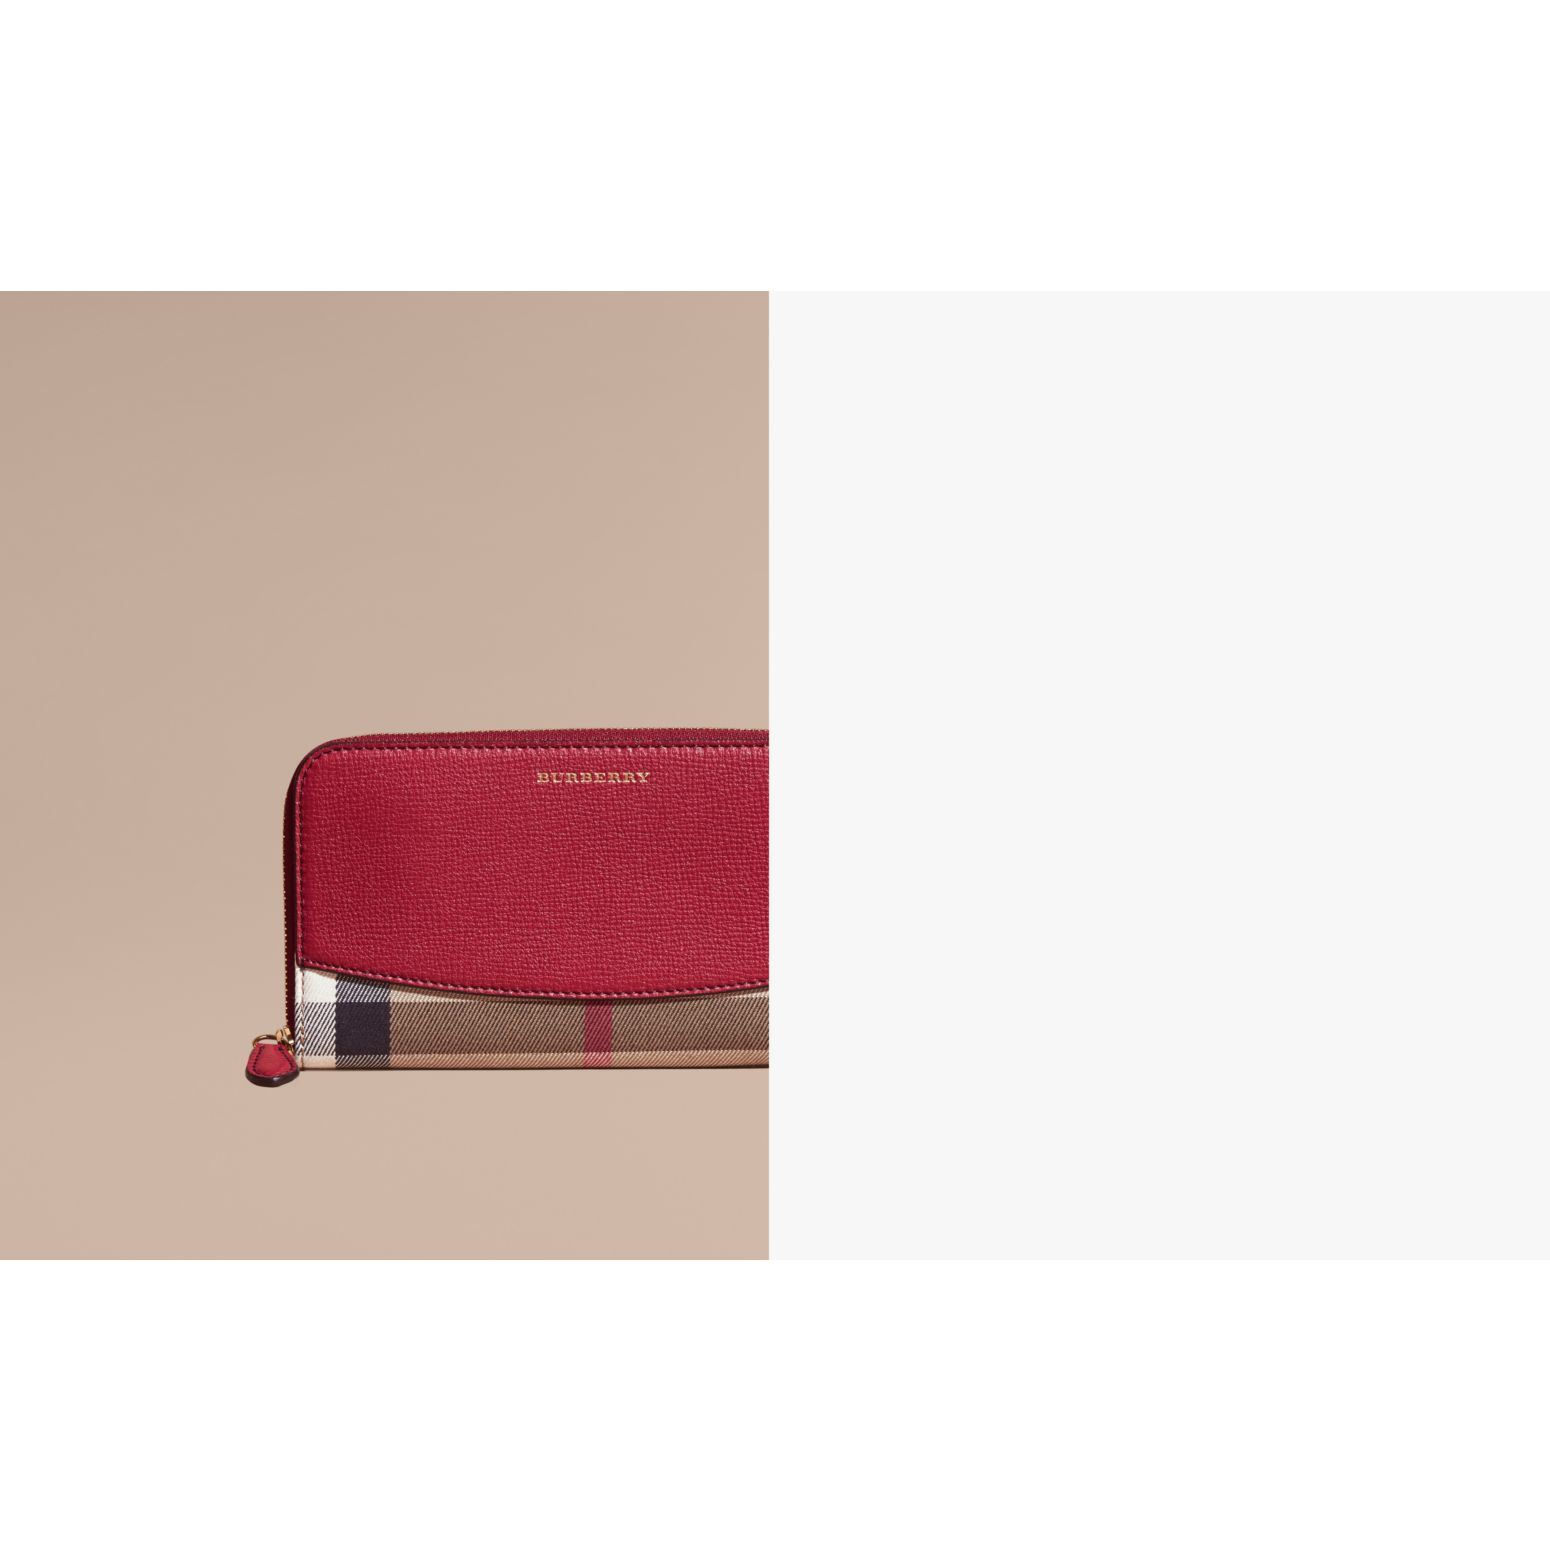 House Check and Leather Ziparound Wallet in Military Red - Women | Burberry Canada - gallery image 2